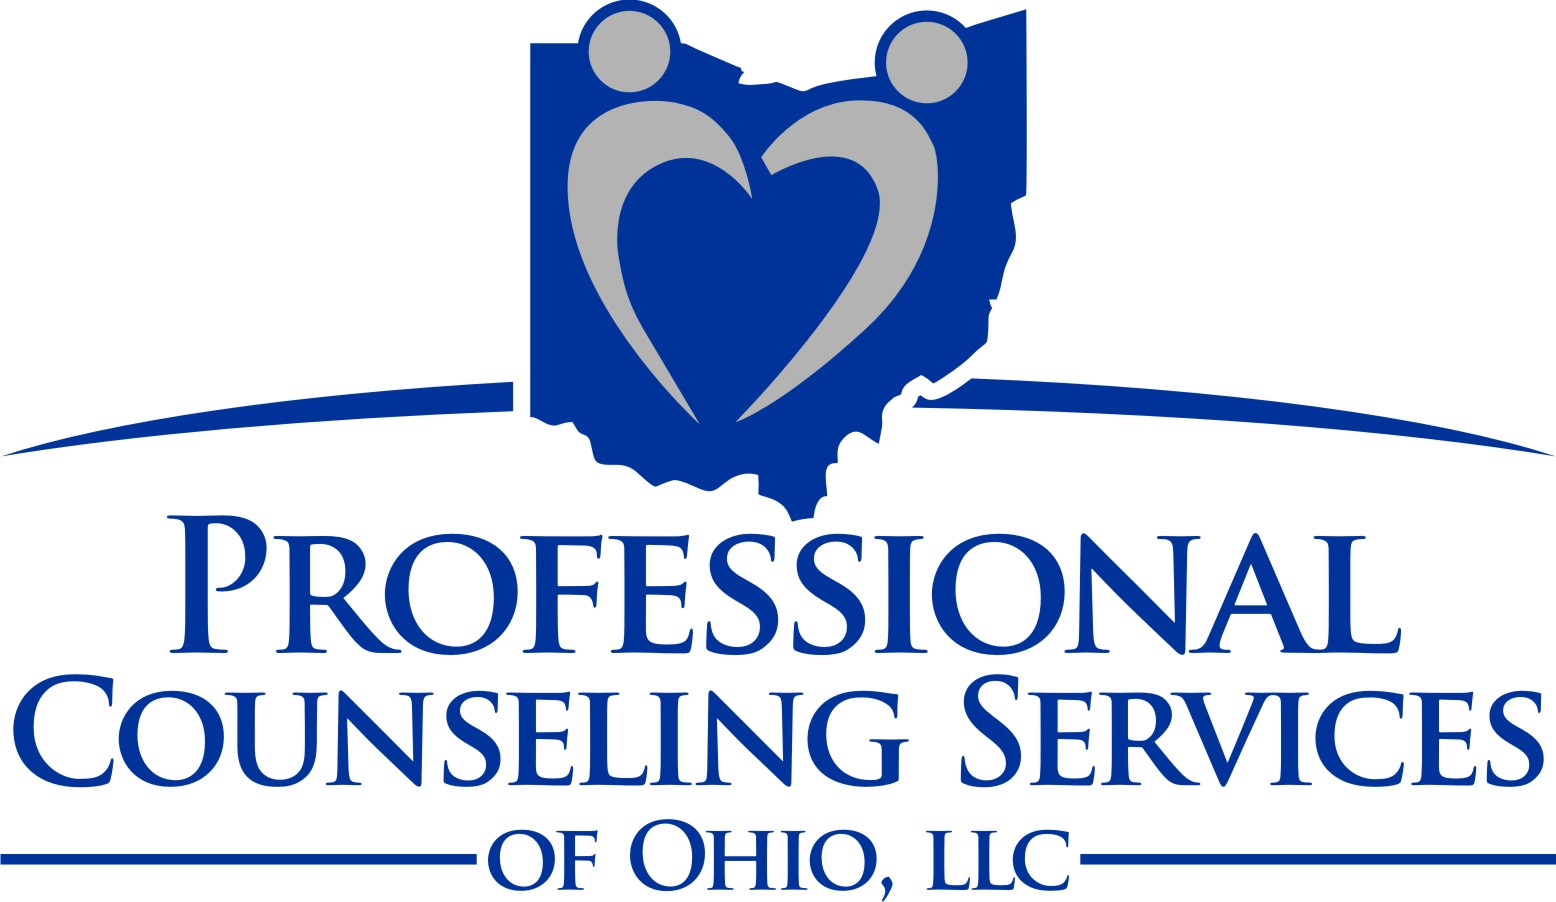 Professionals professional counseling services of ohio llc professional counseling services of ohio llc 1betcityfo Choice Image